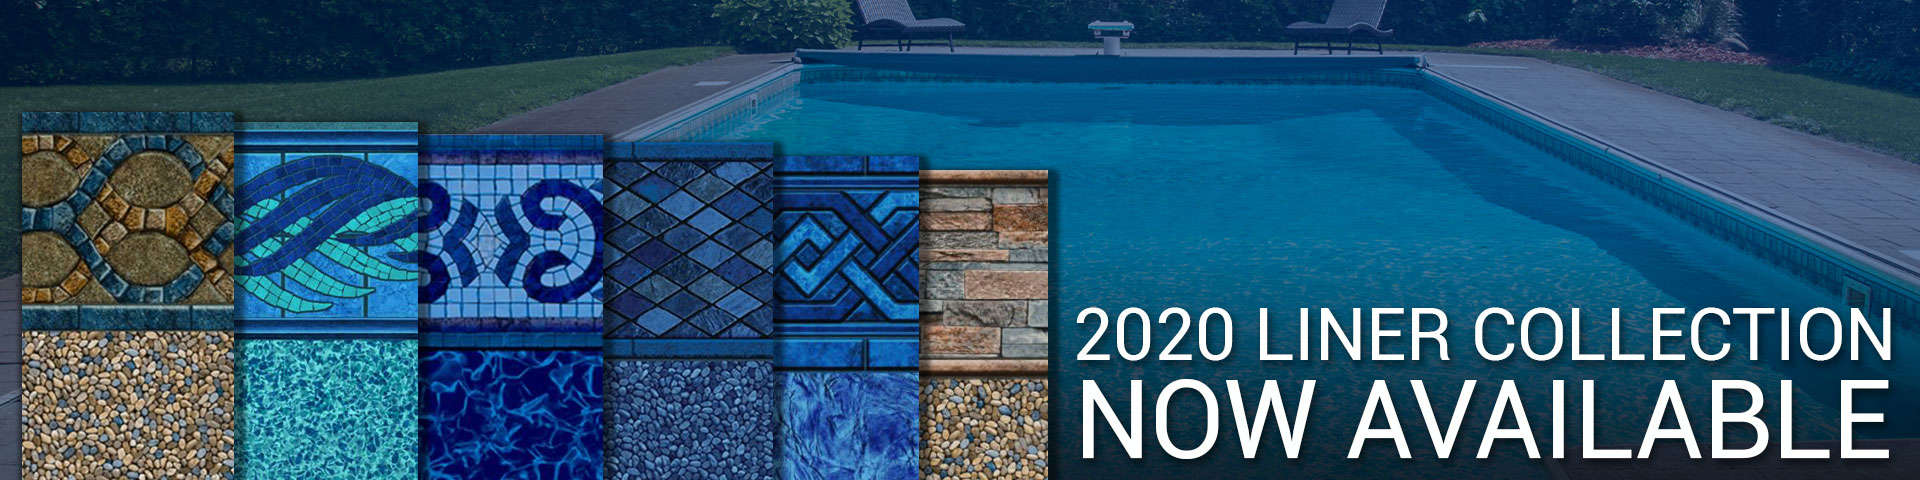 2020 Swimming Pool Liners